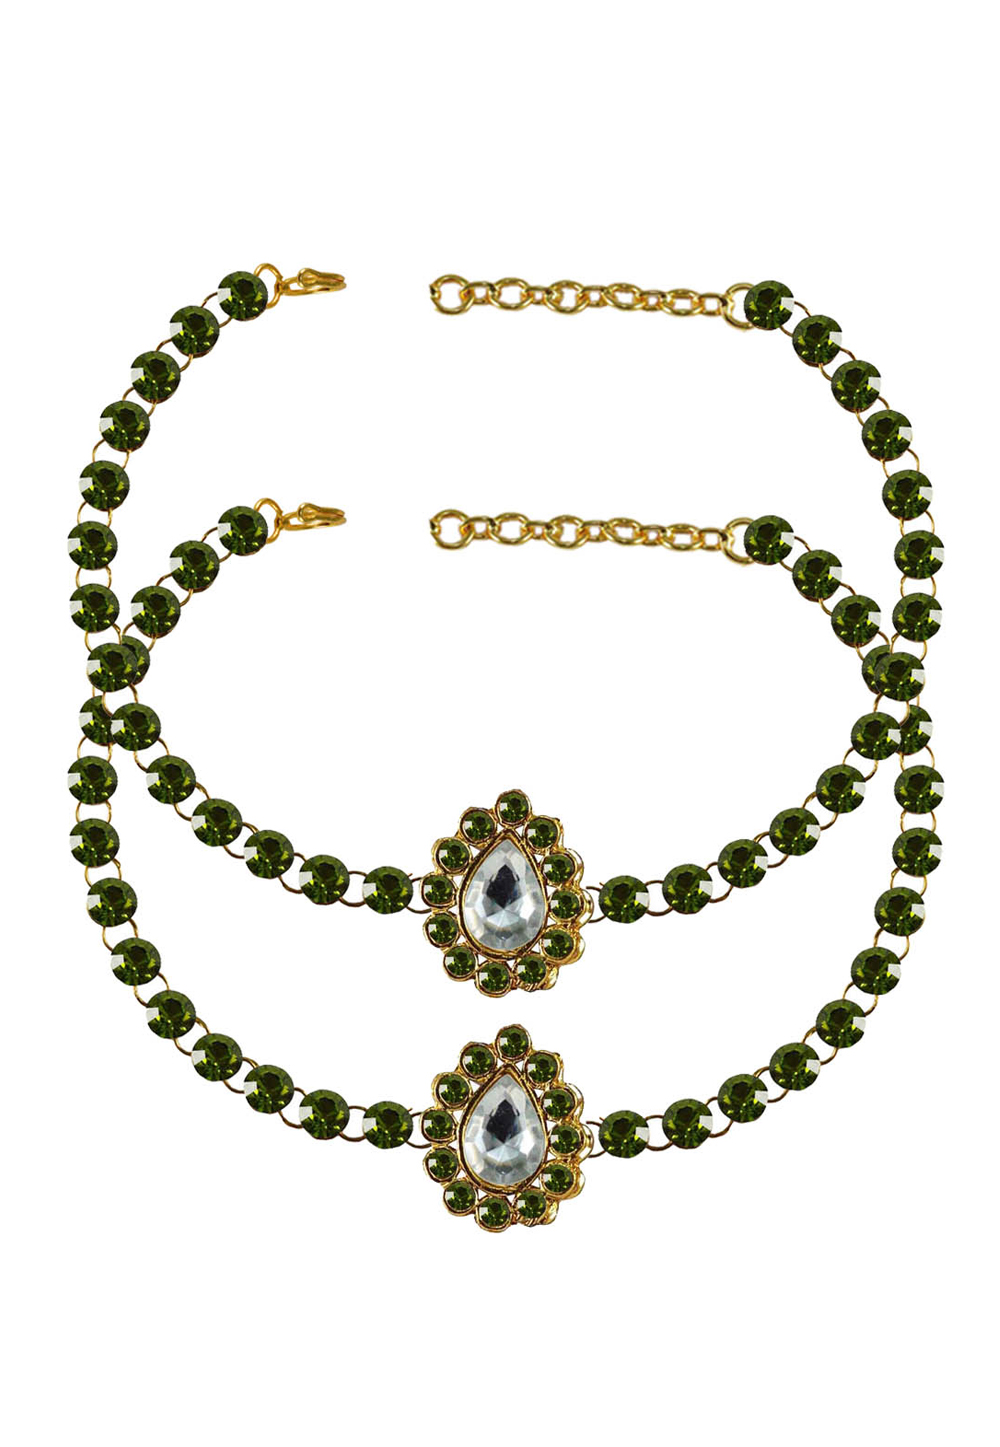 Green Brass Gold Plated Anklets 171325